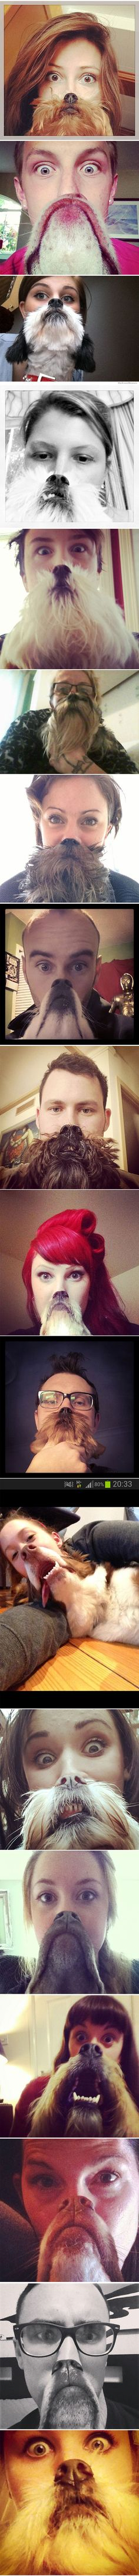 epic dog beards :)